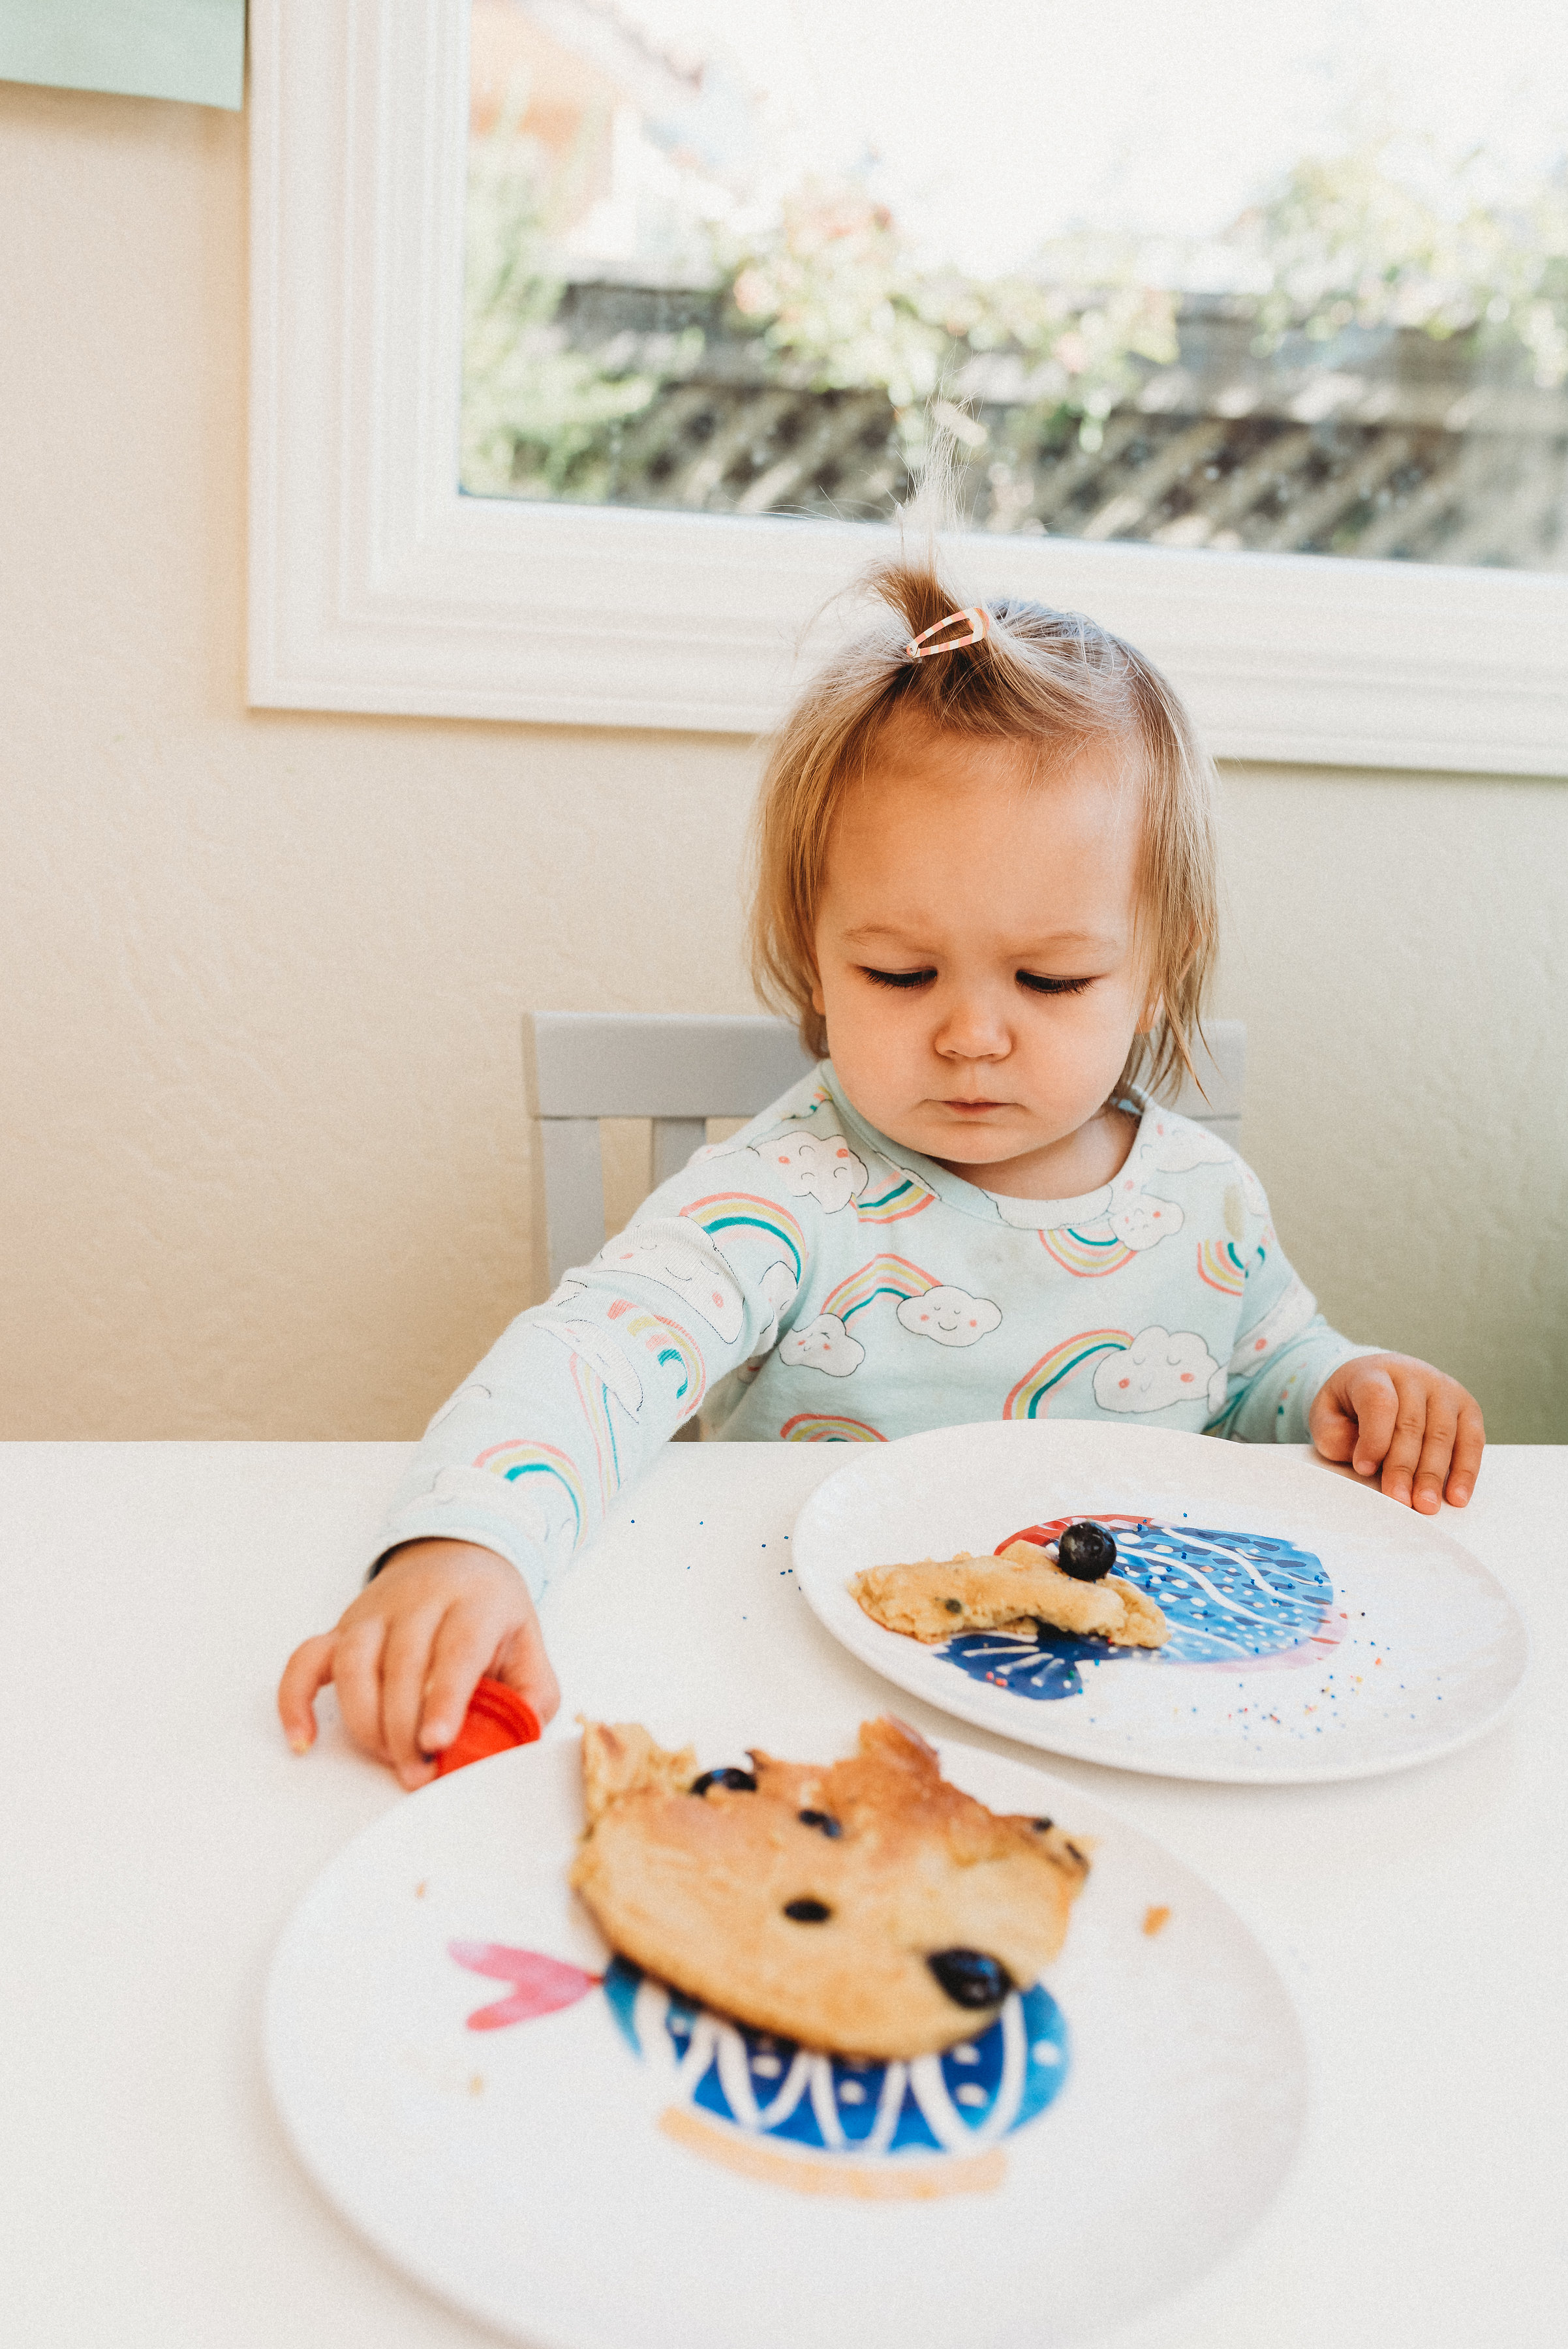 family pancakes morning routine mom of two toddlers pj mornings family time quality time37.jpg